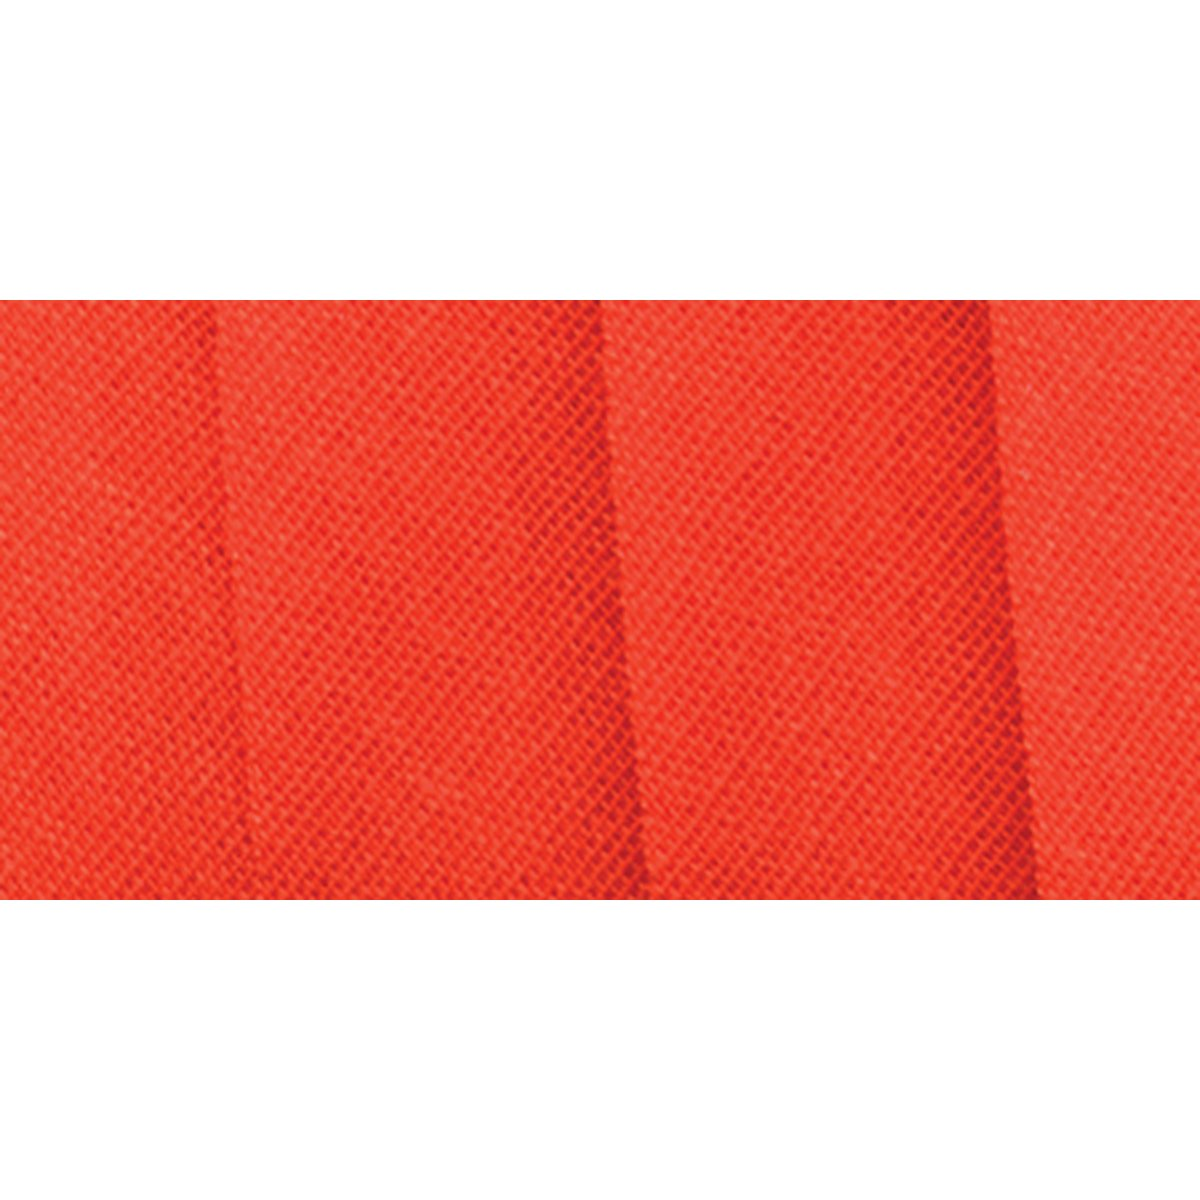 Wrights 117-206-022 Extra Wide Double Fold Bias Tape 3-Yard Bright Pink